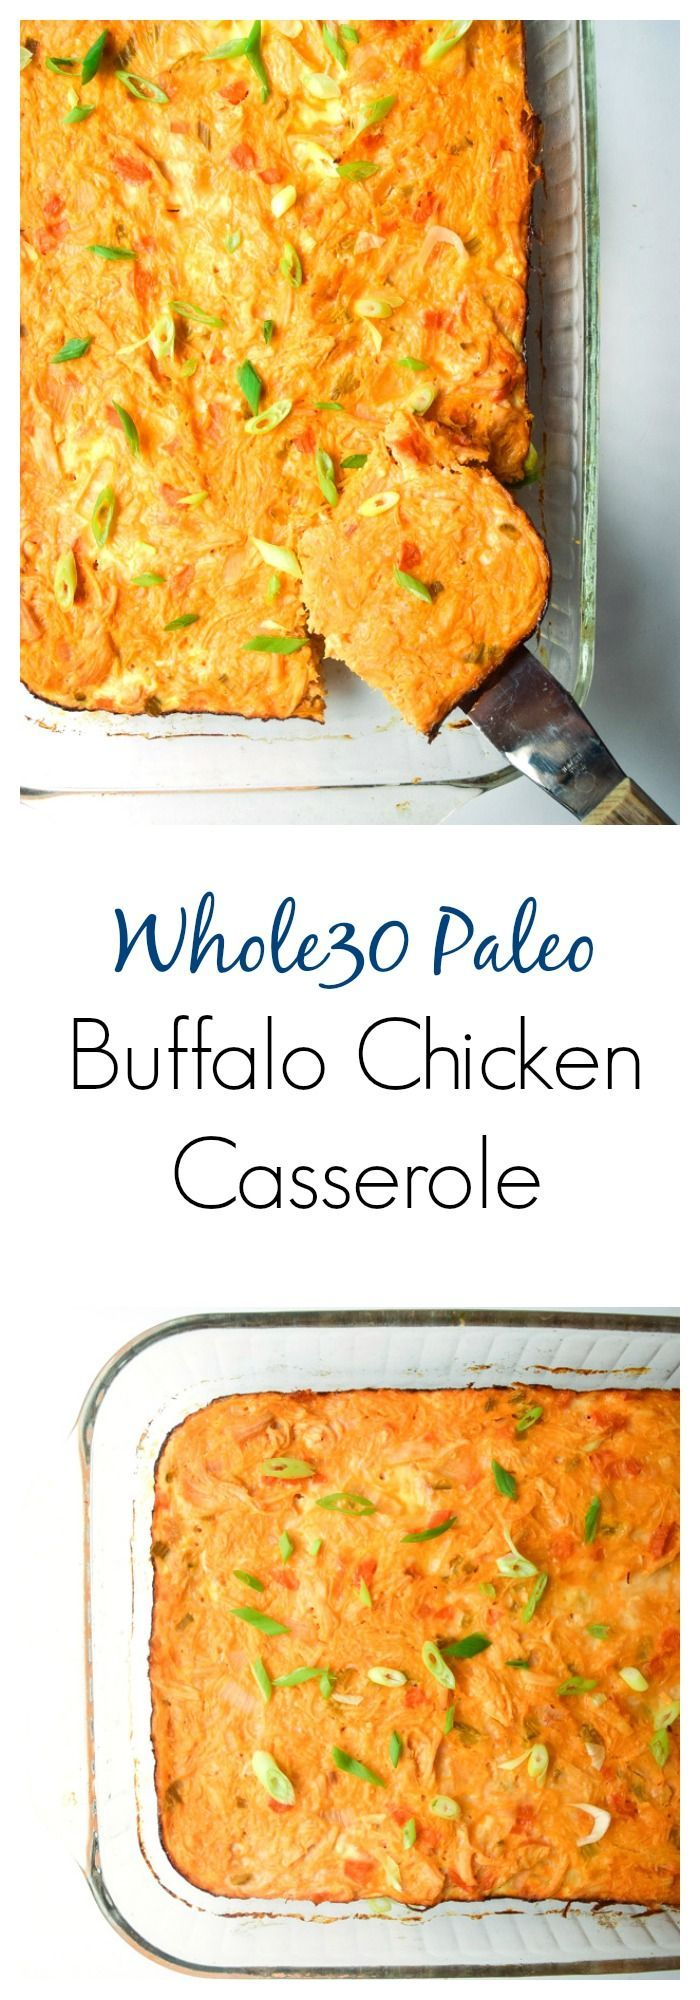 Buffalo Chicken Casserole (Whole30 Paleo) - this comforting casserole will have everyone going back for seconds. Huge flavor and only clean ingredients!   tastythin.com